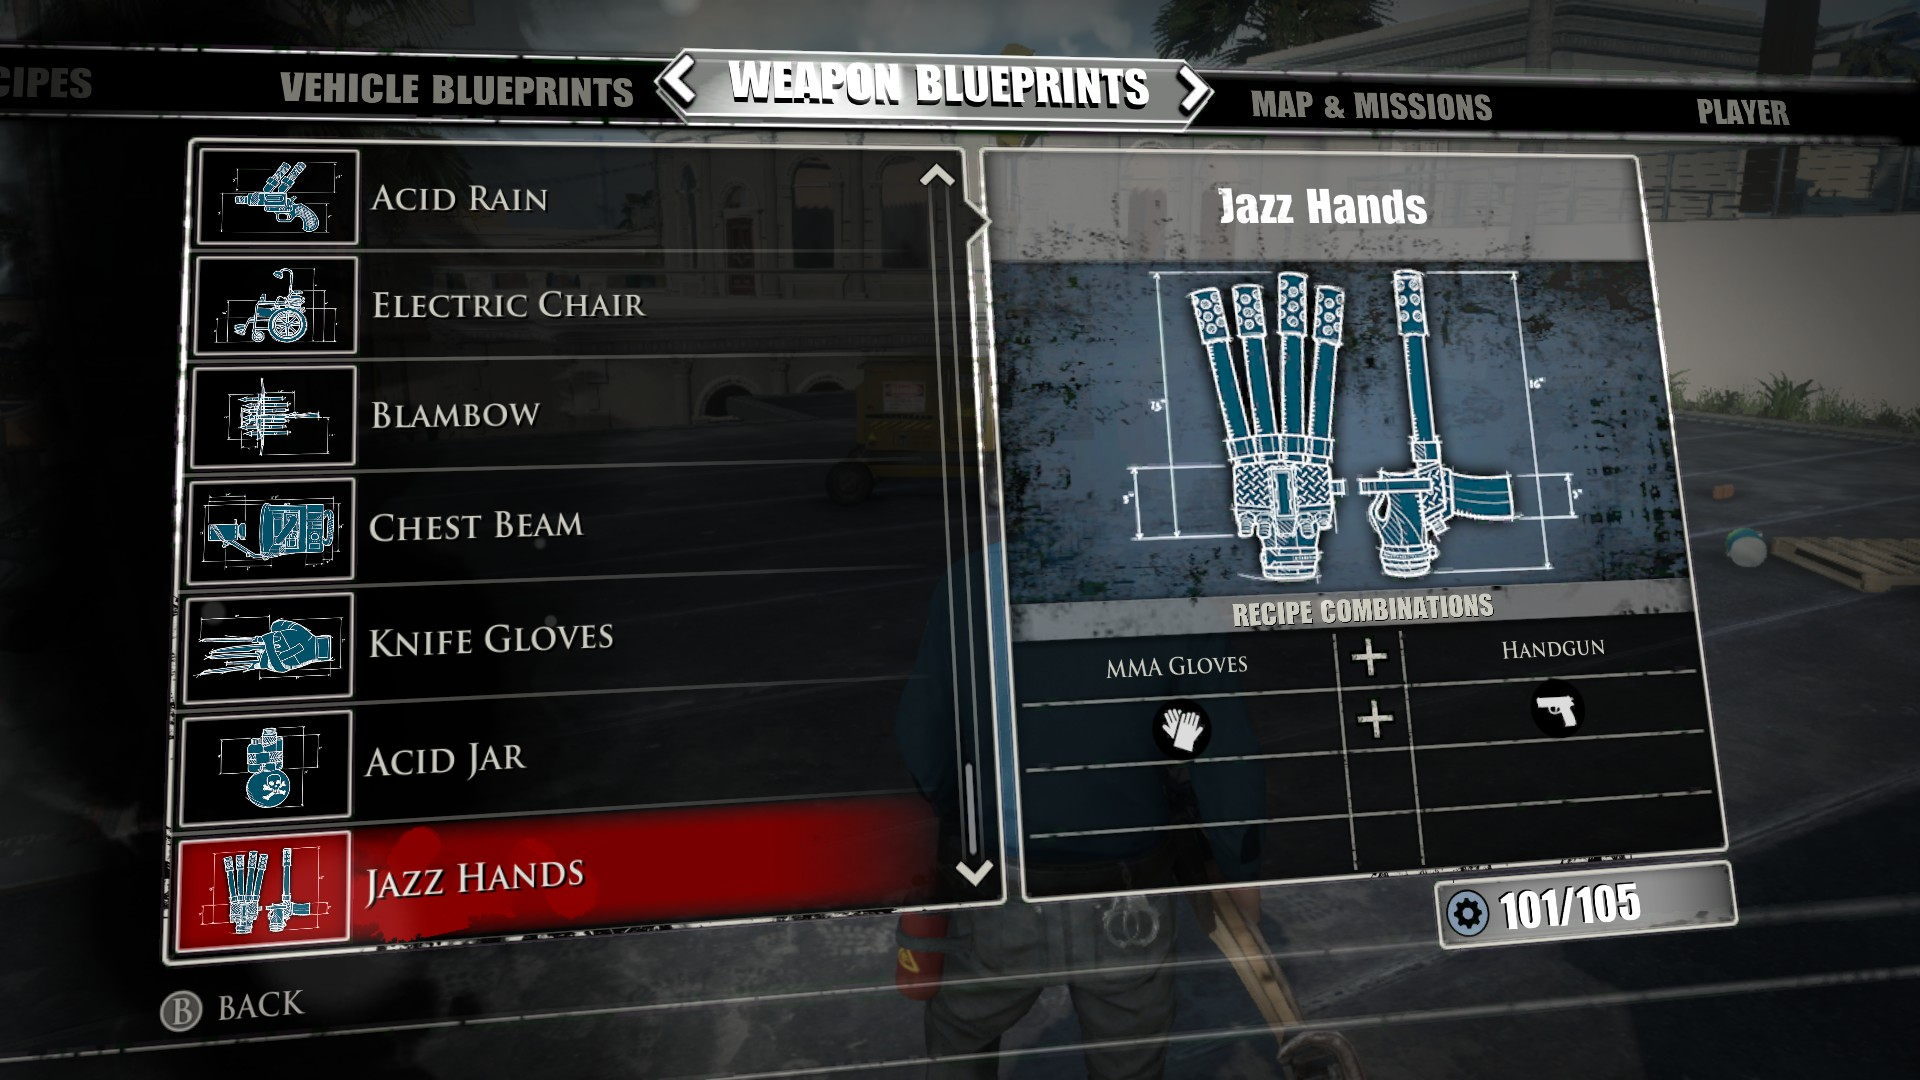 Jazz hands dead rising wiki fandom powered by wikia malvernweather Choice Image